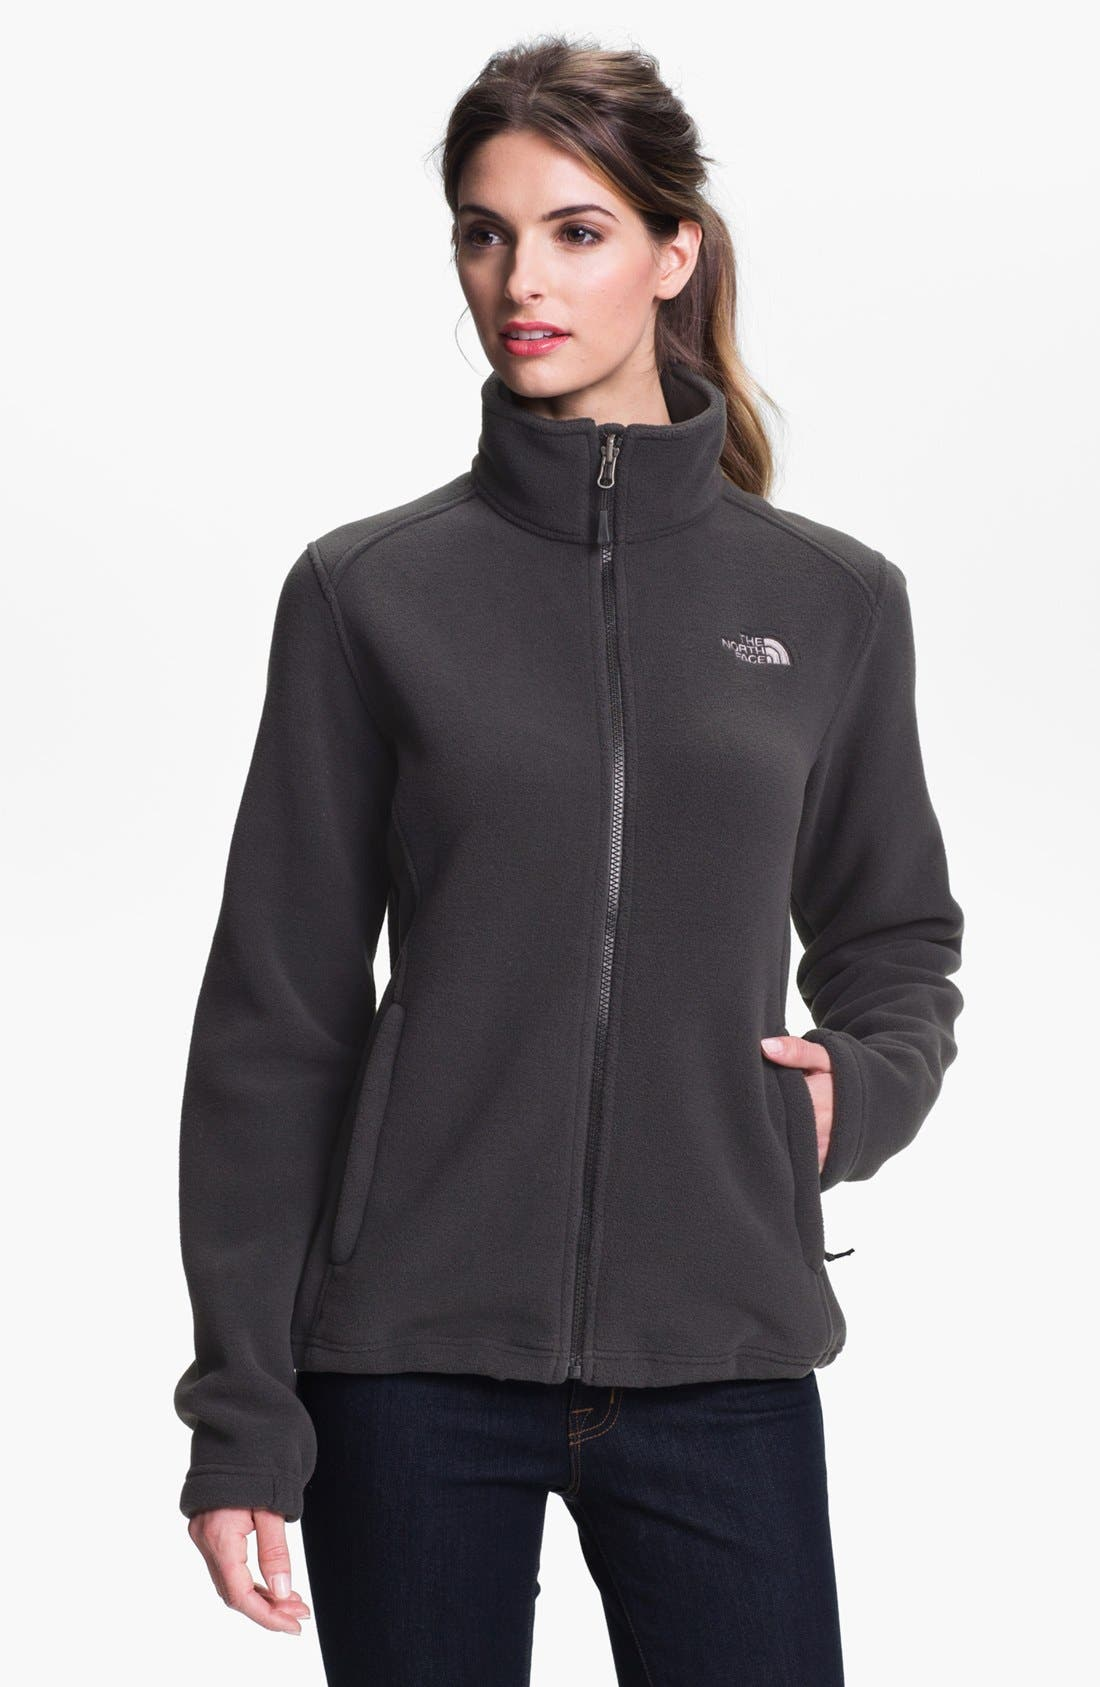 Alternate Image 1 Selected - The North Face 'RDT 300' Fleece Jacket